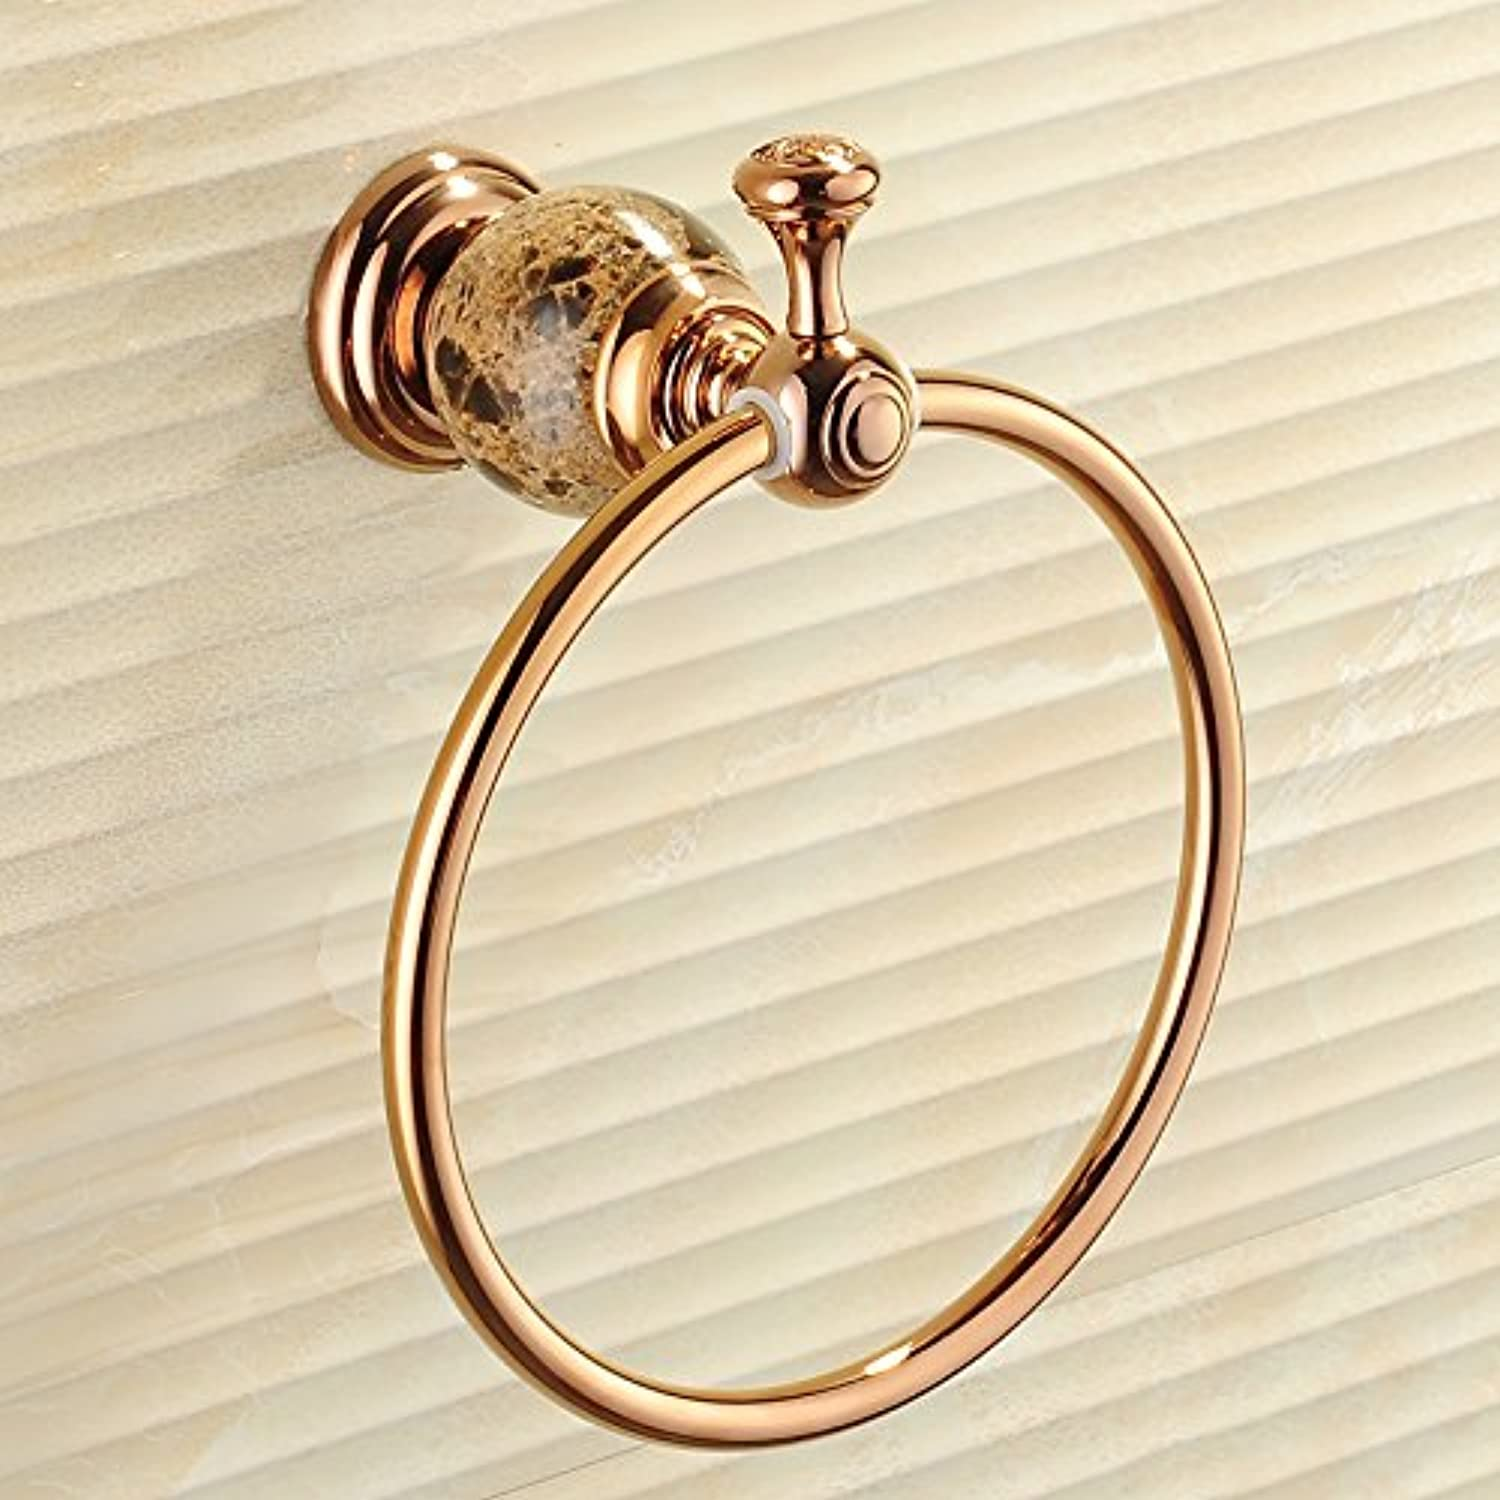 Hardwareh gold Towel Ring Full Copper Bath Towel Ring Jade Towel Bathrooms European Style Antique Round Towel Rack,Coffee Stonemodern Simple and Durable Home Decoration Classic Quality Assurance